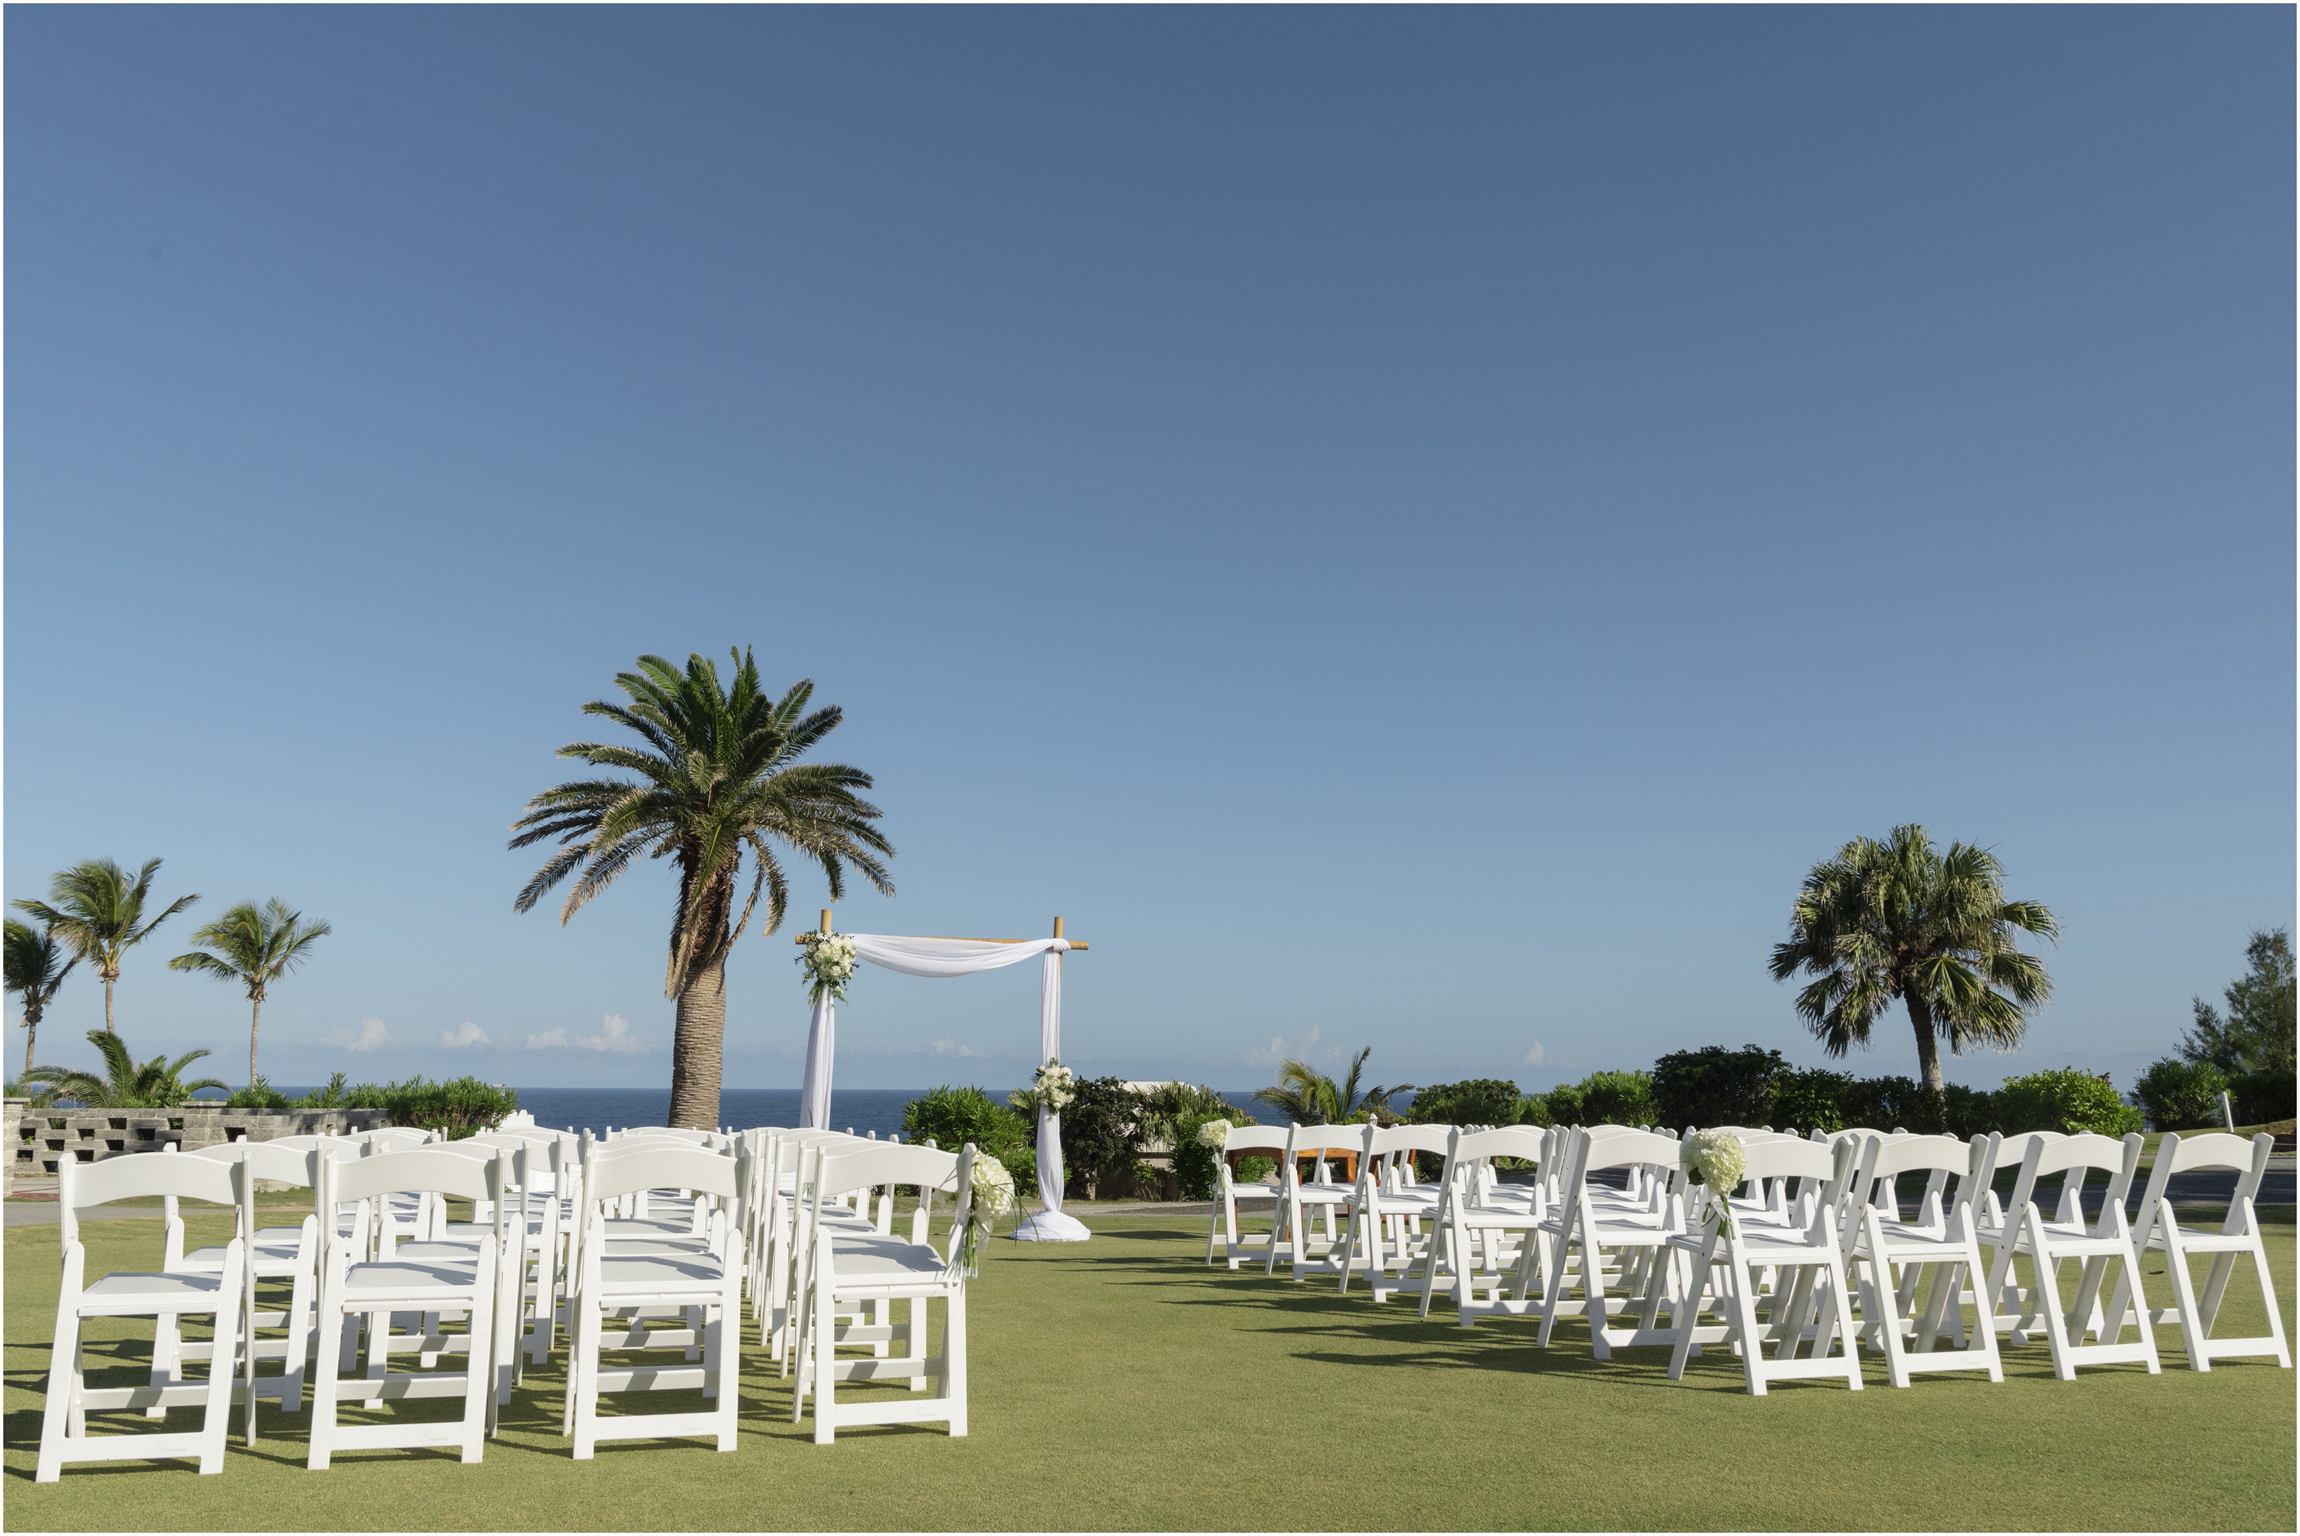 ©FianderFoto_Catherine_Kenny_Coral Beach Wedding_175.jpg